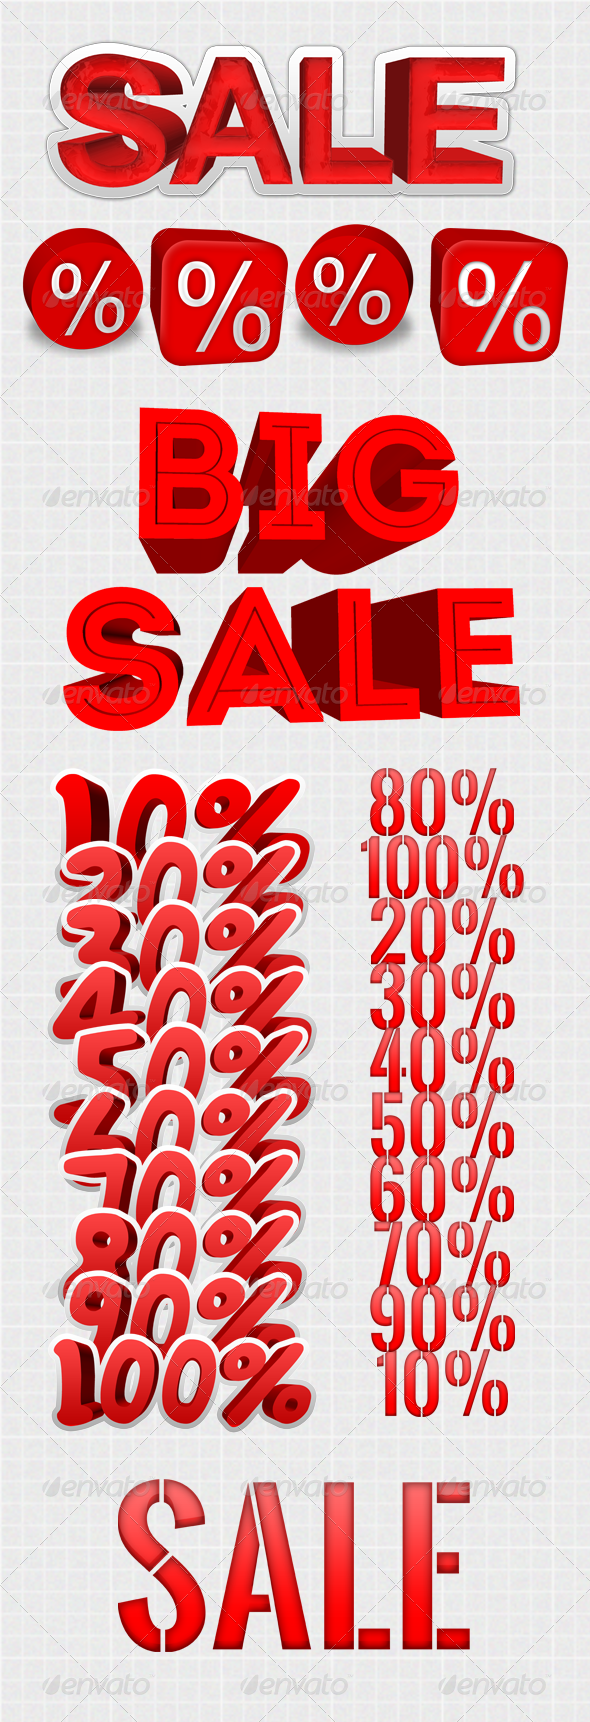 Sale Text Discount Big Resolution - Text 3D Renders